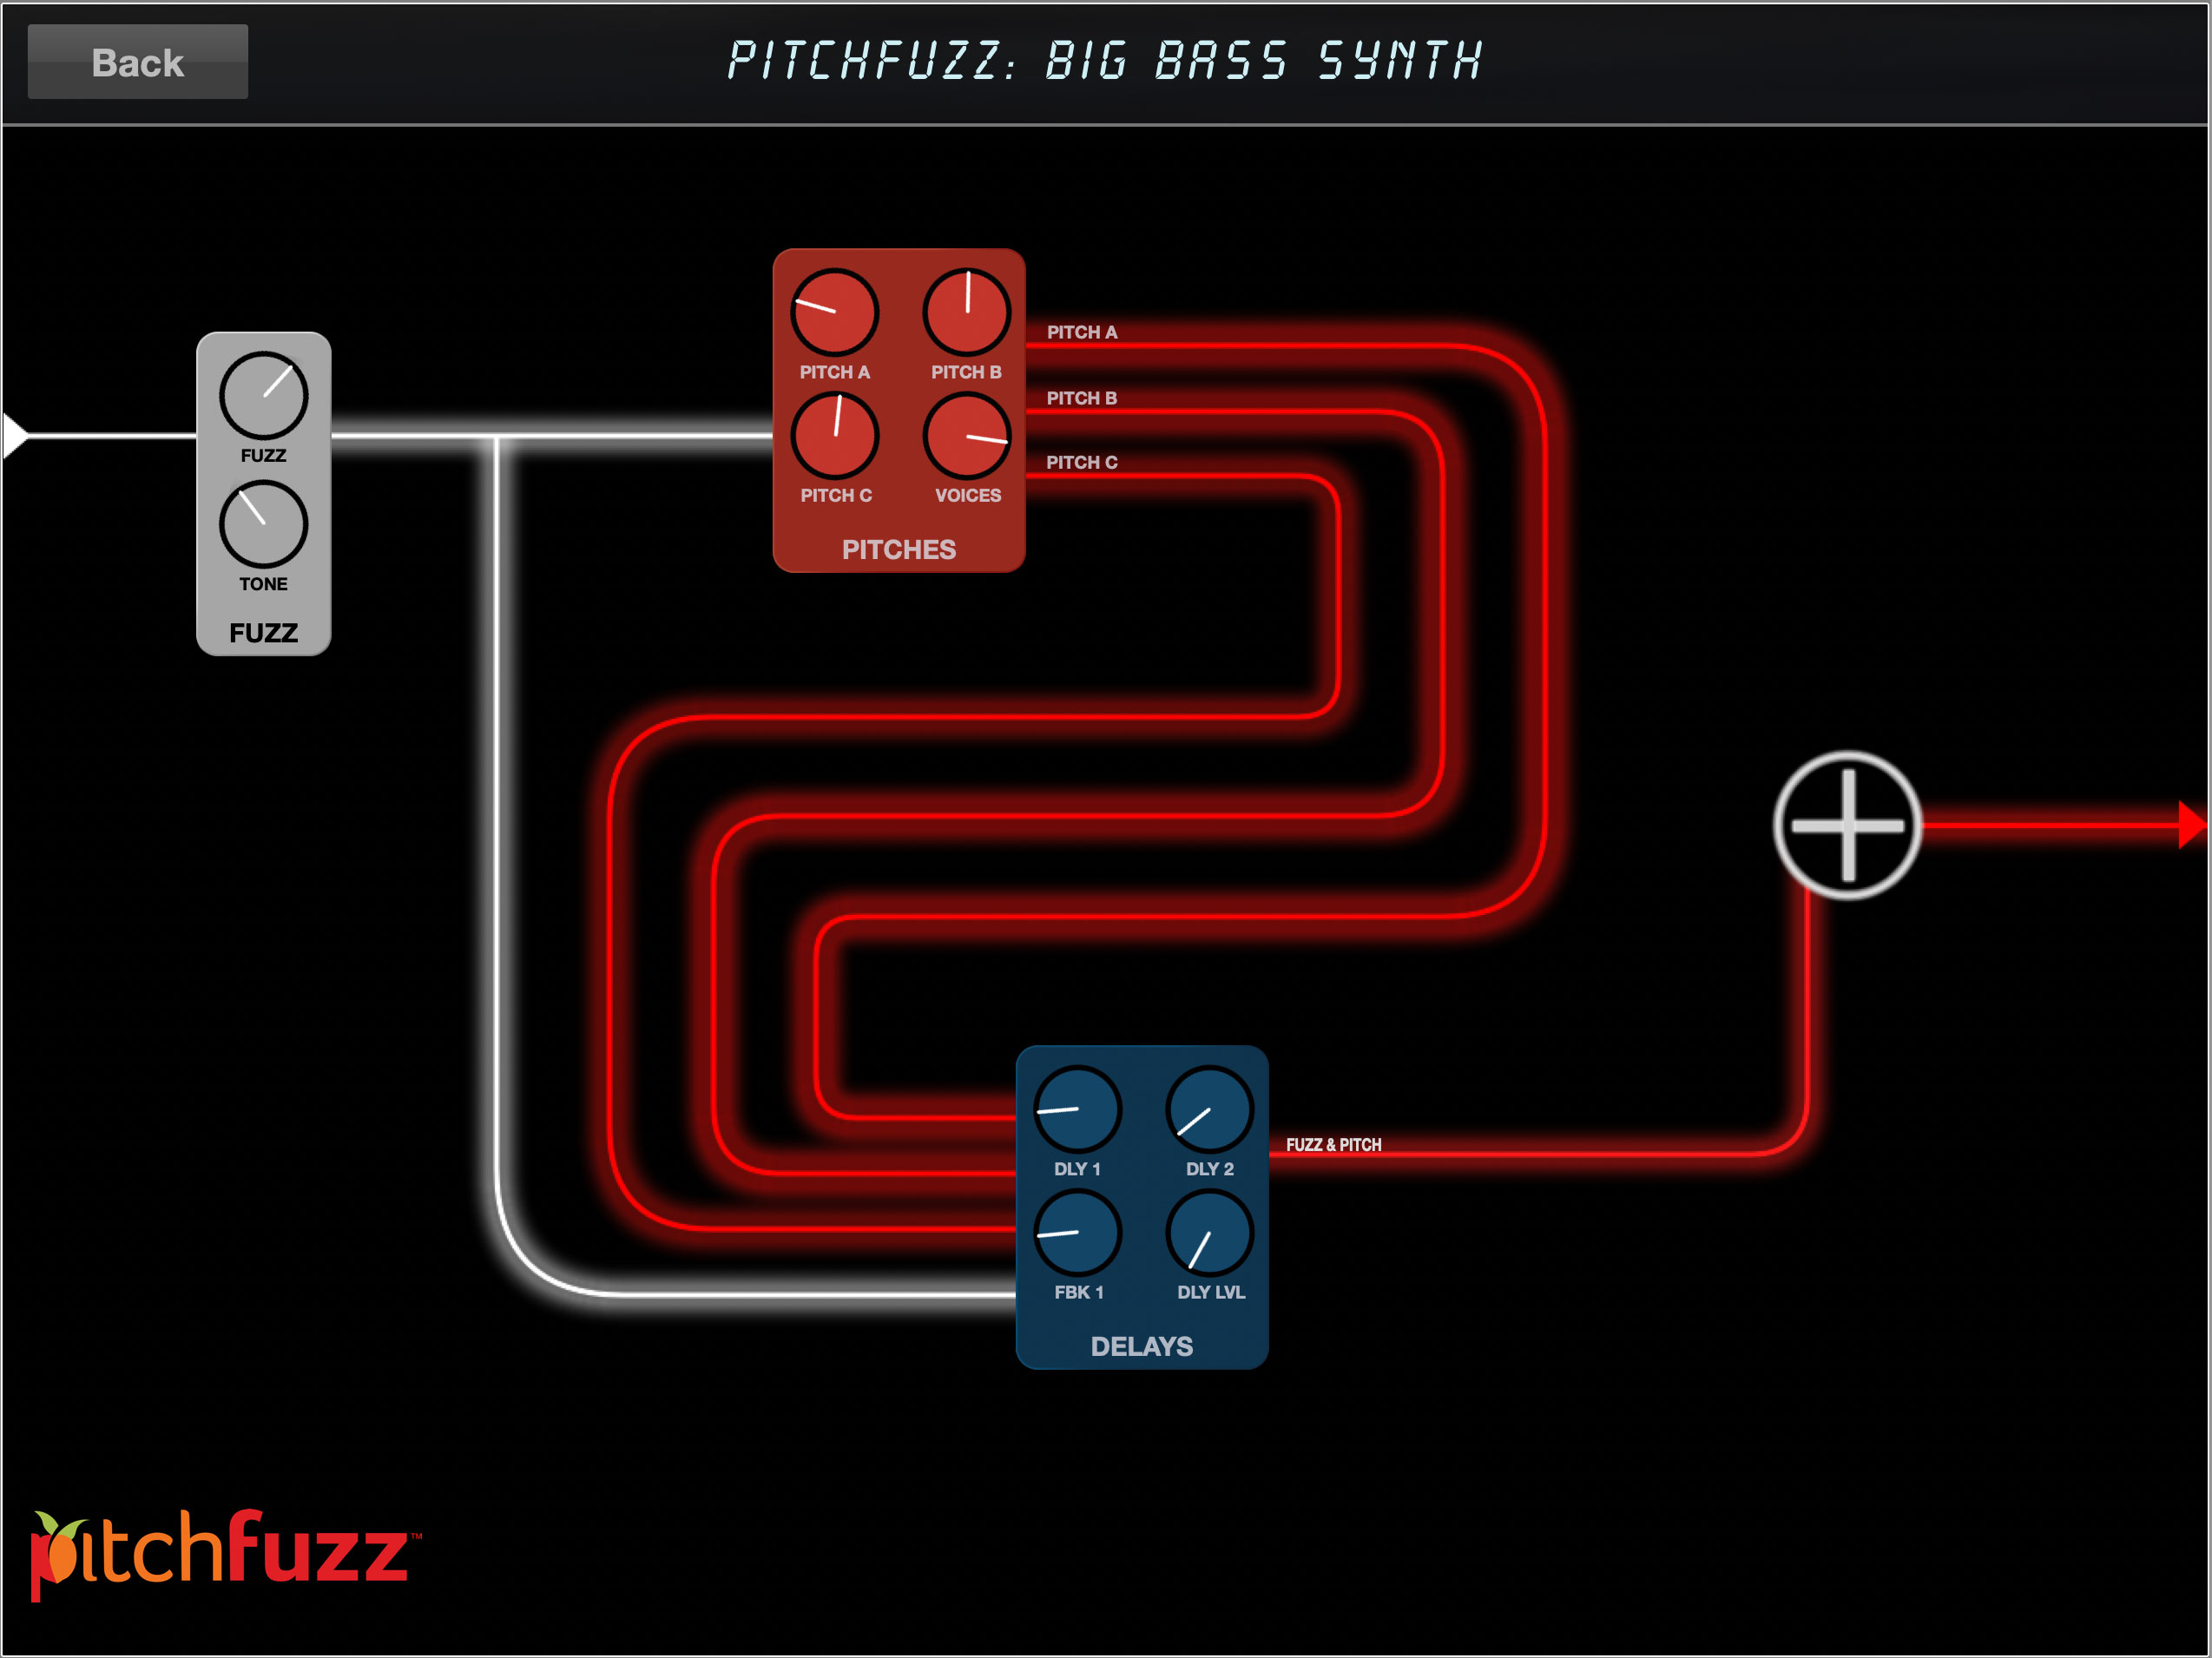 PitchFuzz Secondary Controls